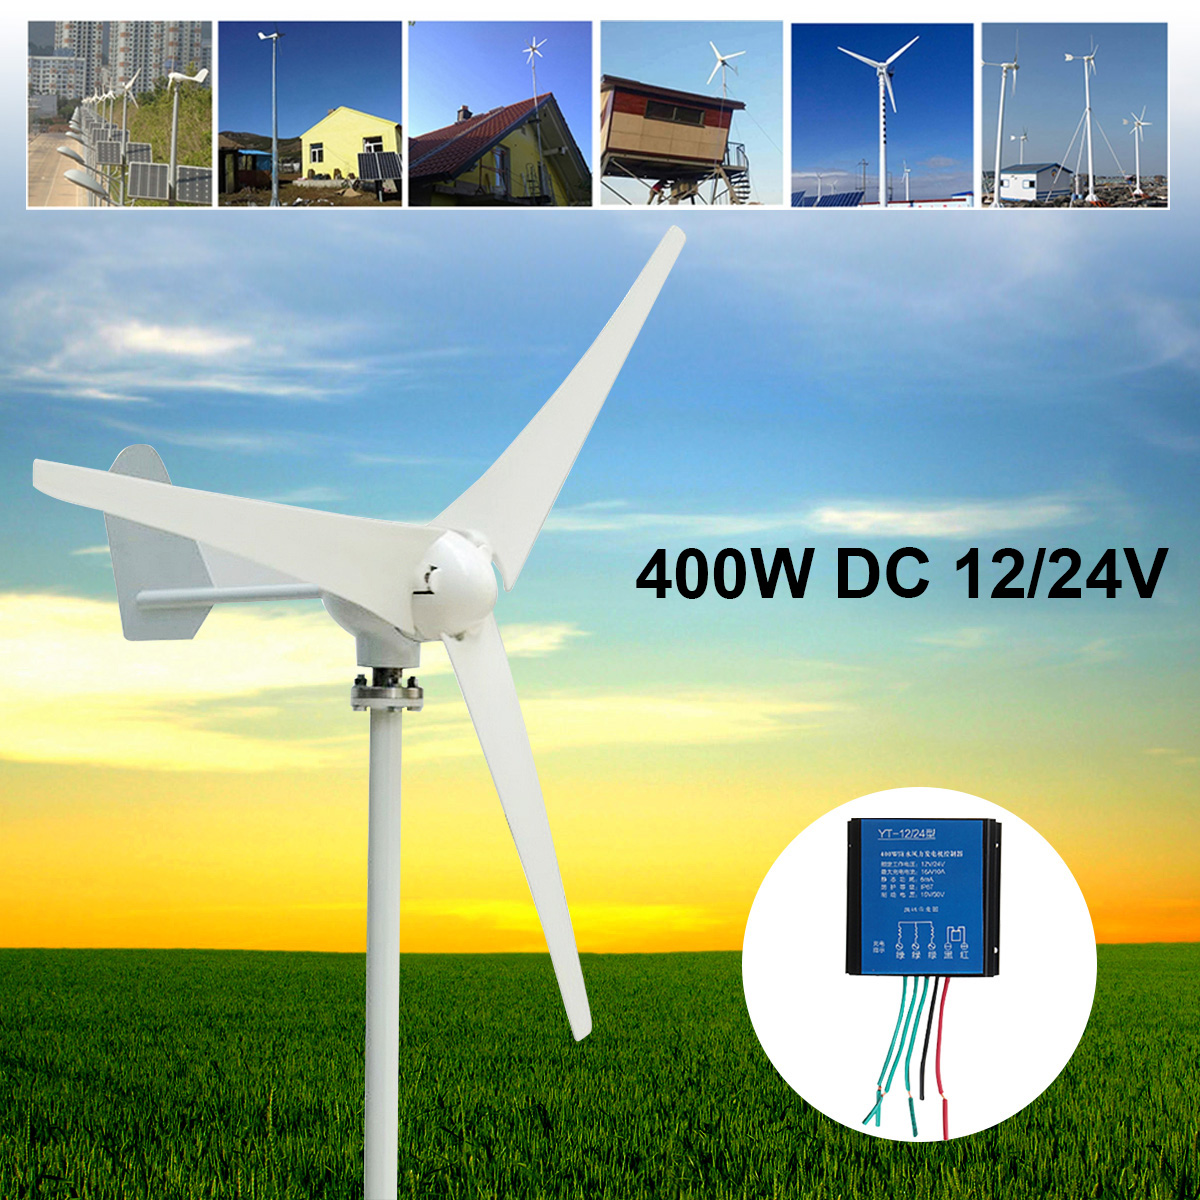 Max 500W Wind Turbine Generator DC 12V 24V 3/5 Blade Power Supply + Charge Controller perrelet turbine diver a1066 3 page 5